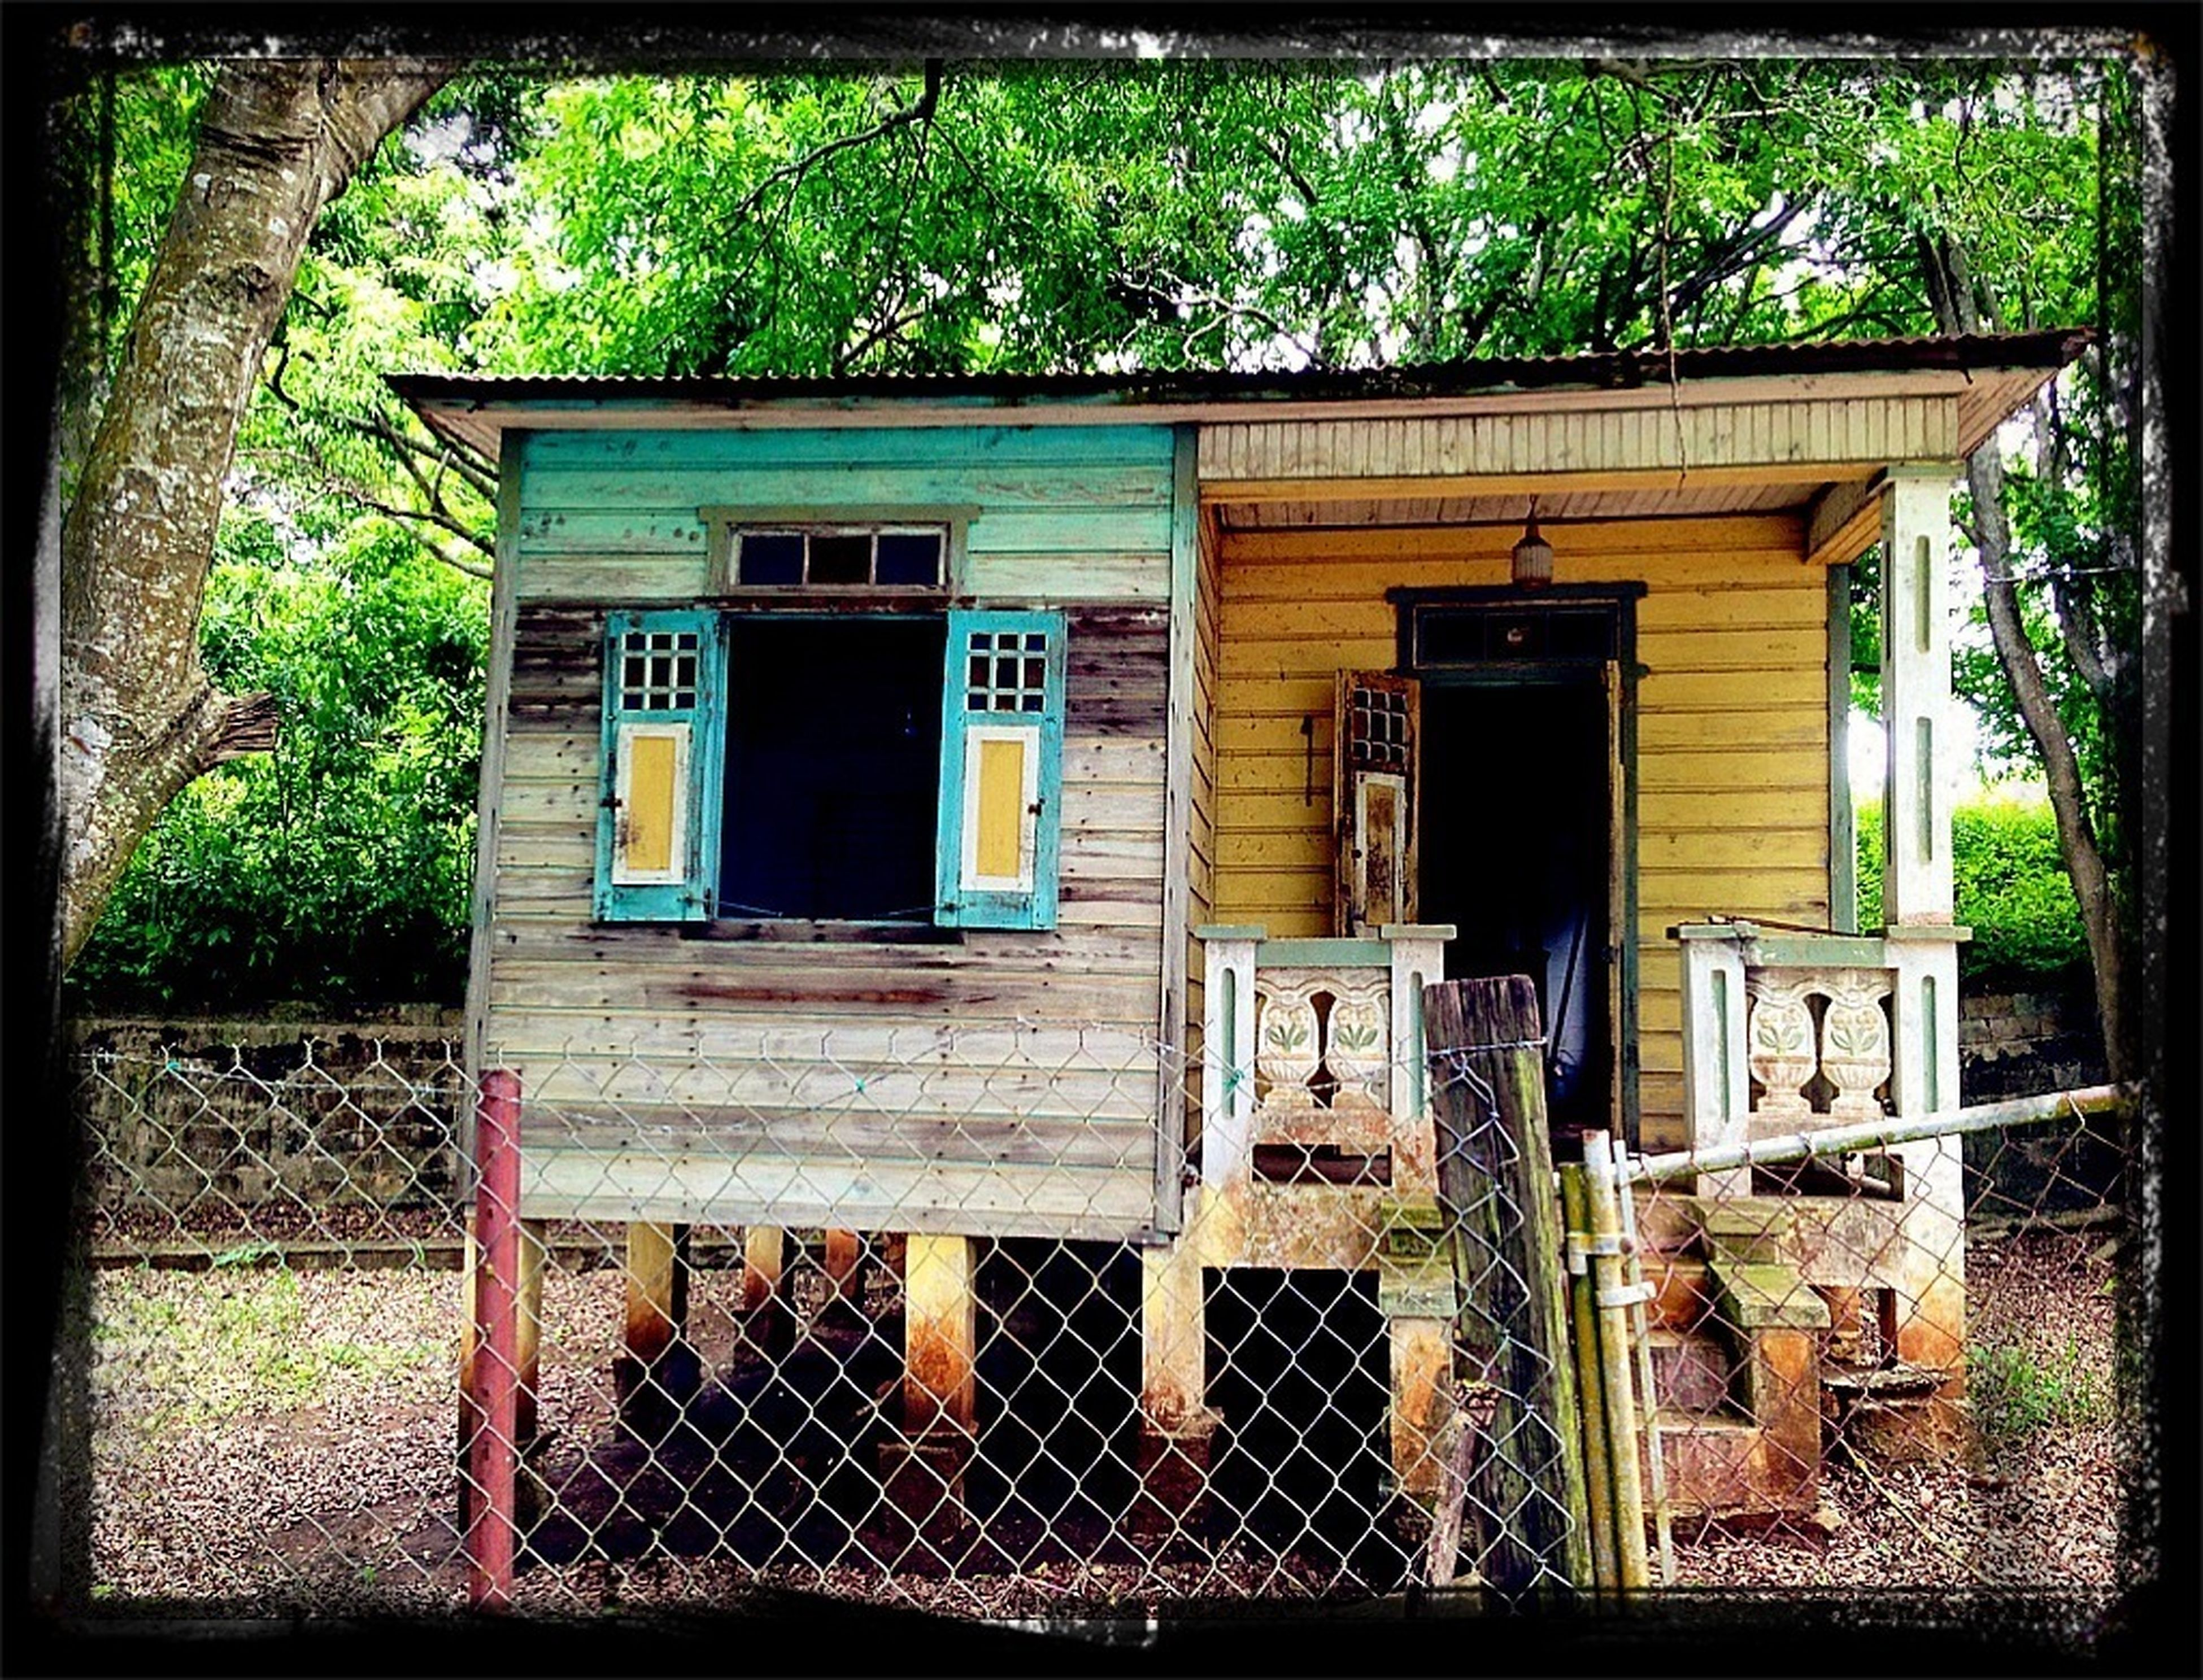 transfer print, auto post production filter, building exterior, built structure, architecture, house, tree, window, outdoors, day, residential structure, abandoned, grass, old, no people, closed, sunlight, door, residential building, obsolete